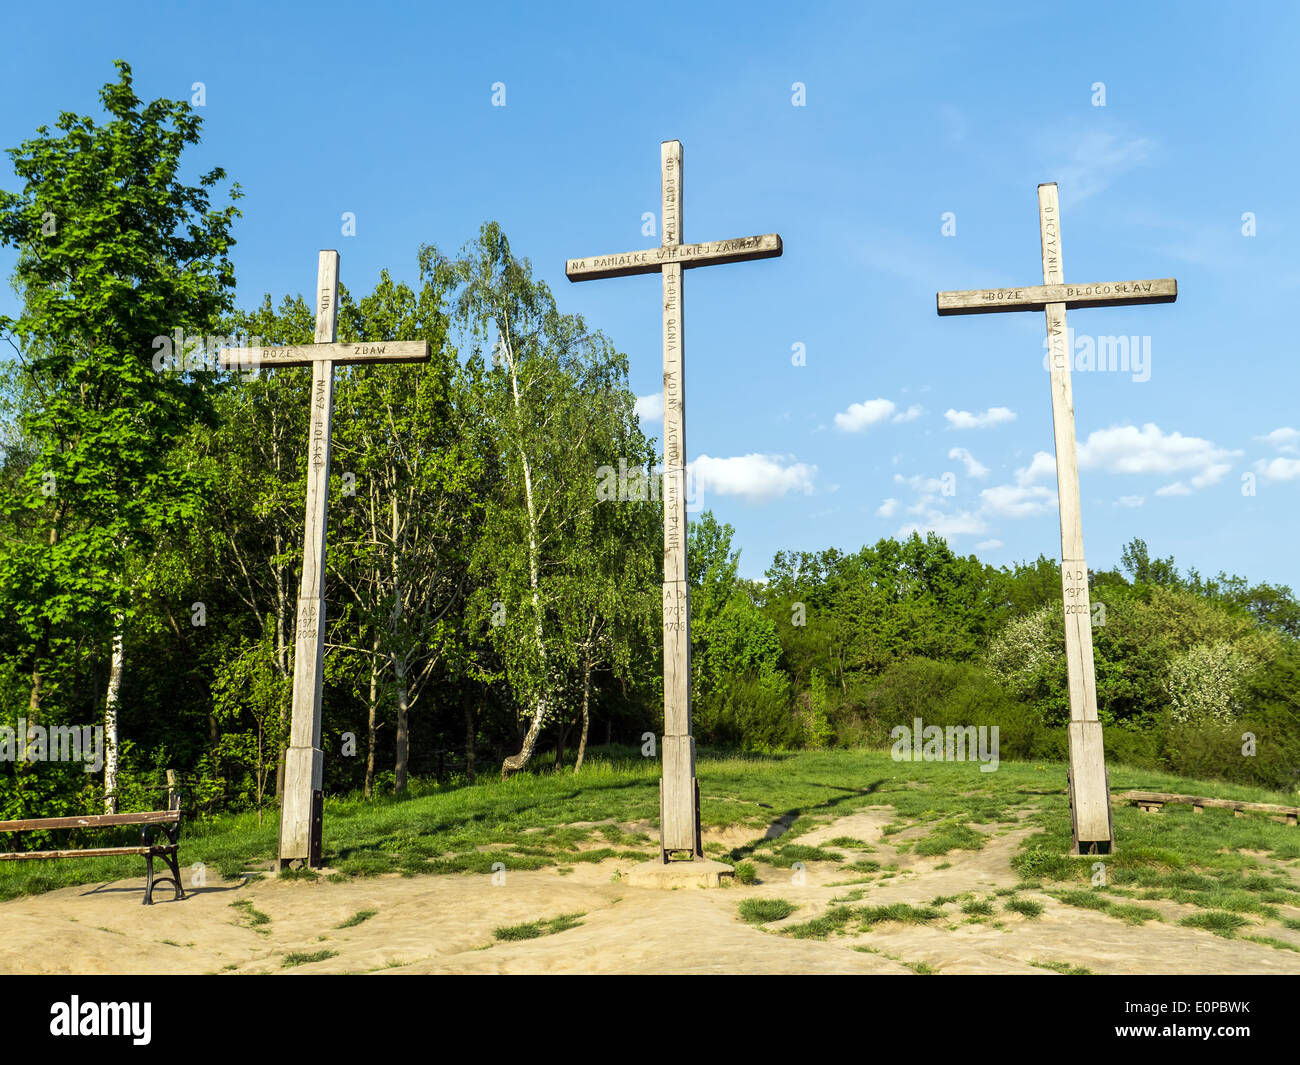 Three Crosses Mountain, Kazimierz Dolny, Poland - Memorial commemorating a plague that decimated the town's population - Stock Image